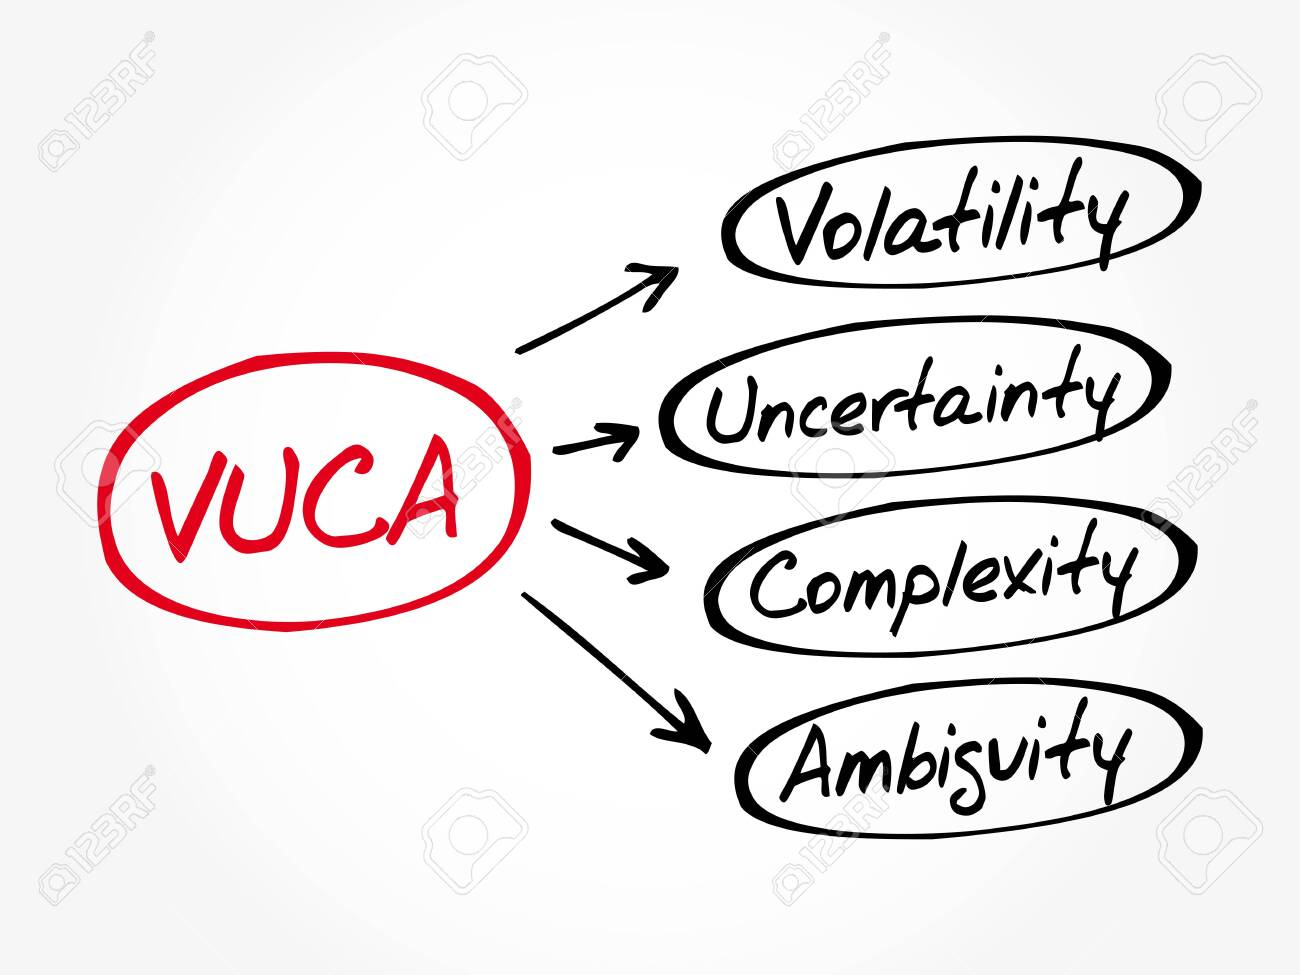 VUCA - Volatility, Uncertainty, Complexity, Ambiguity acronym, business concept background - 145621517